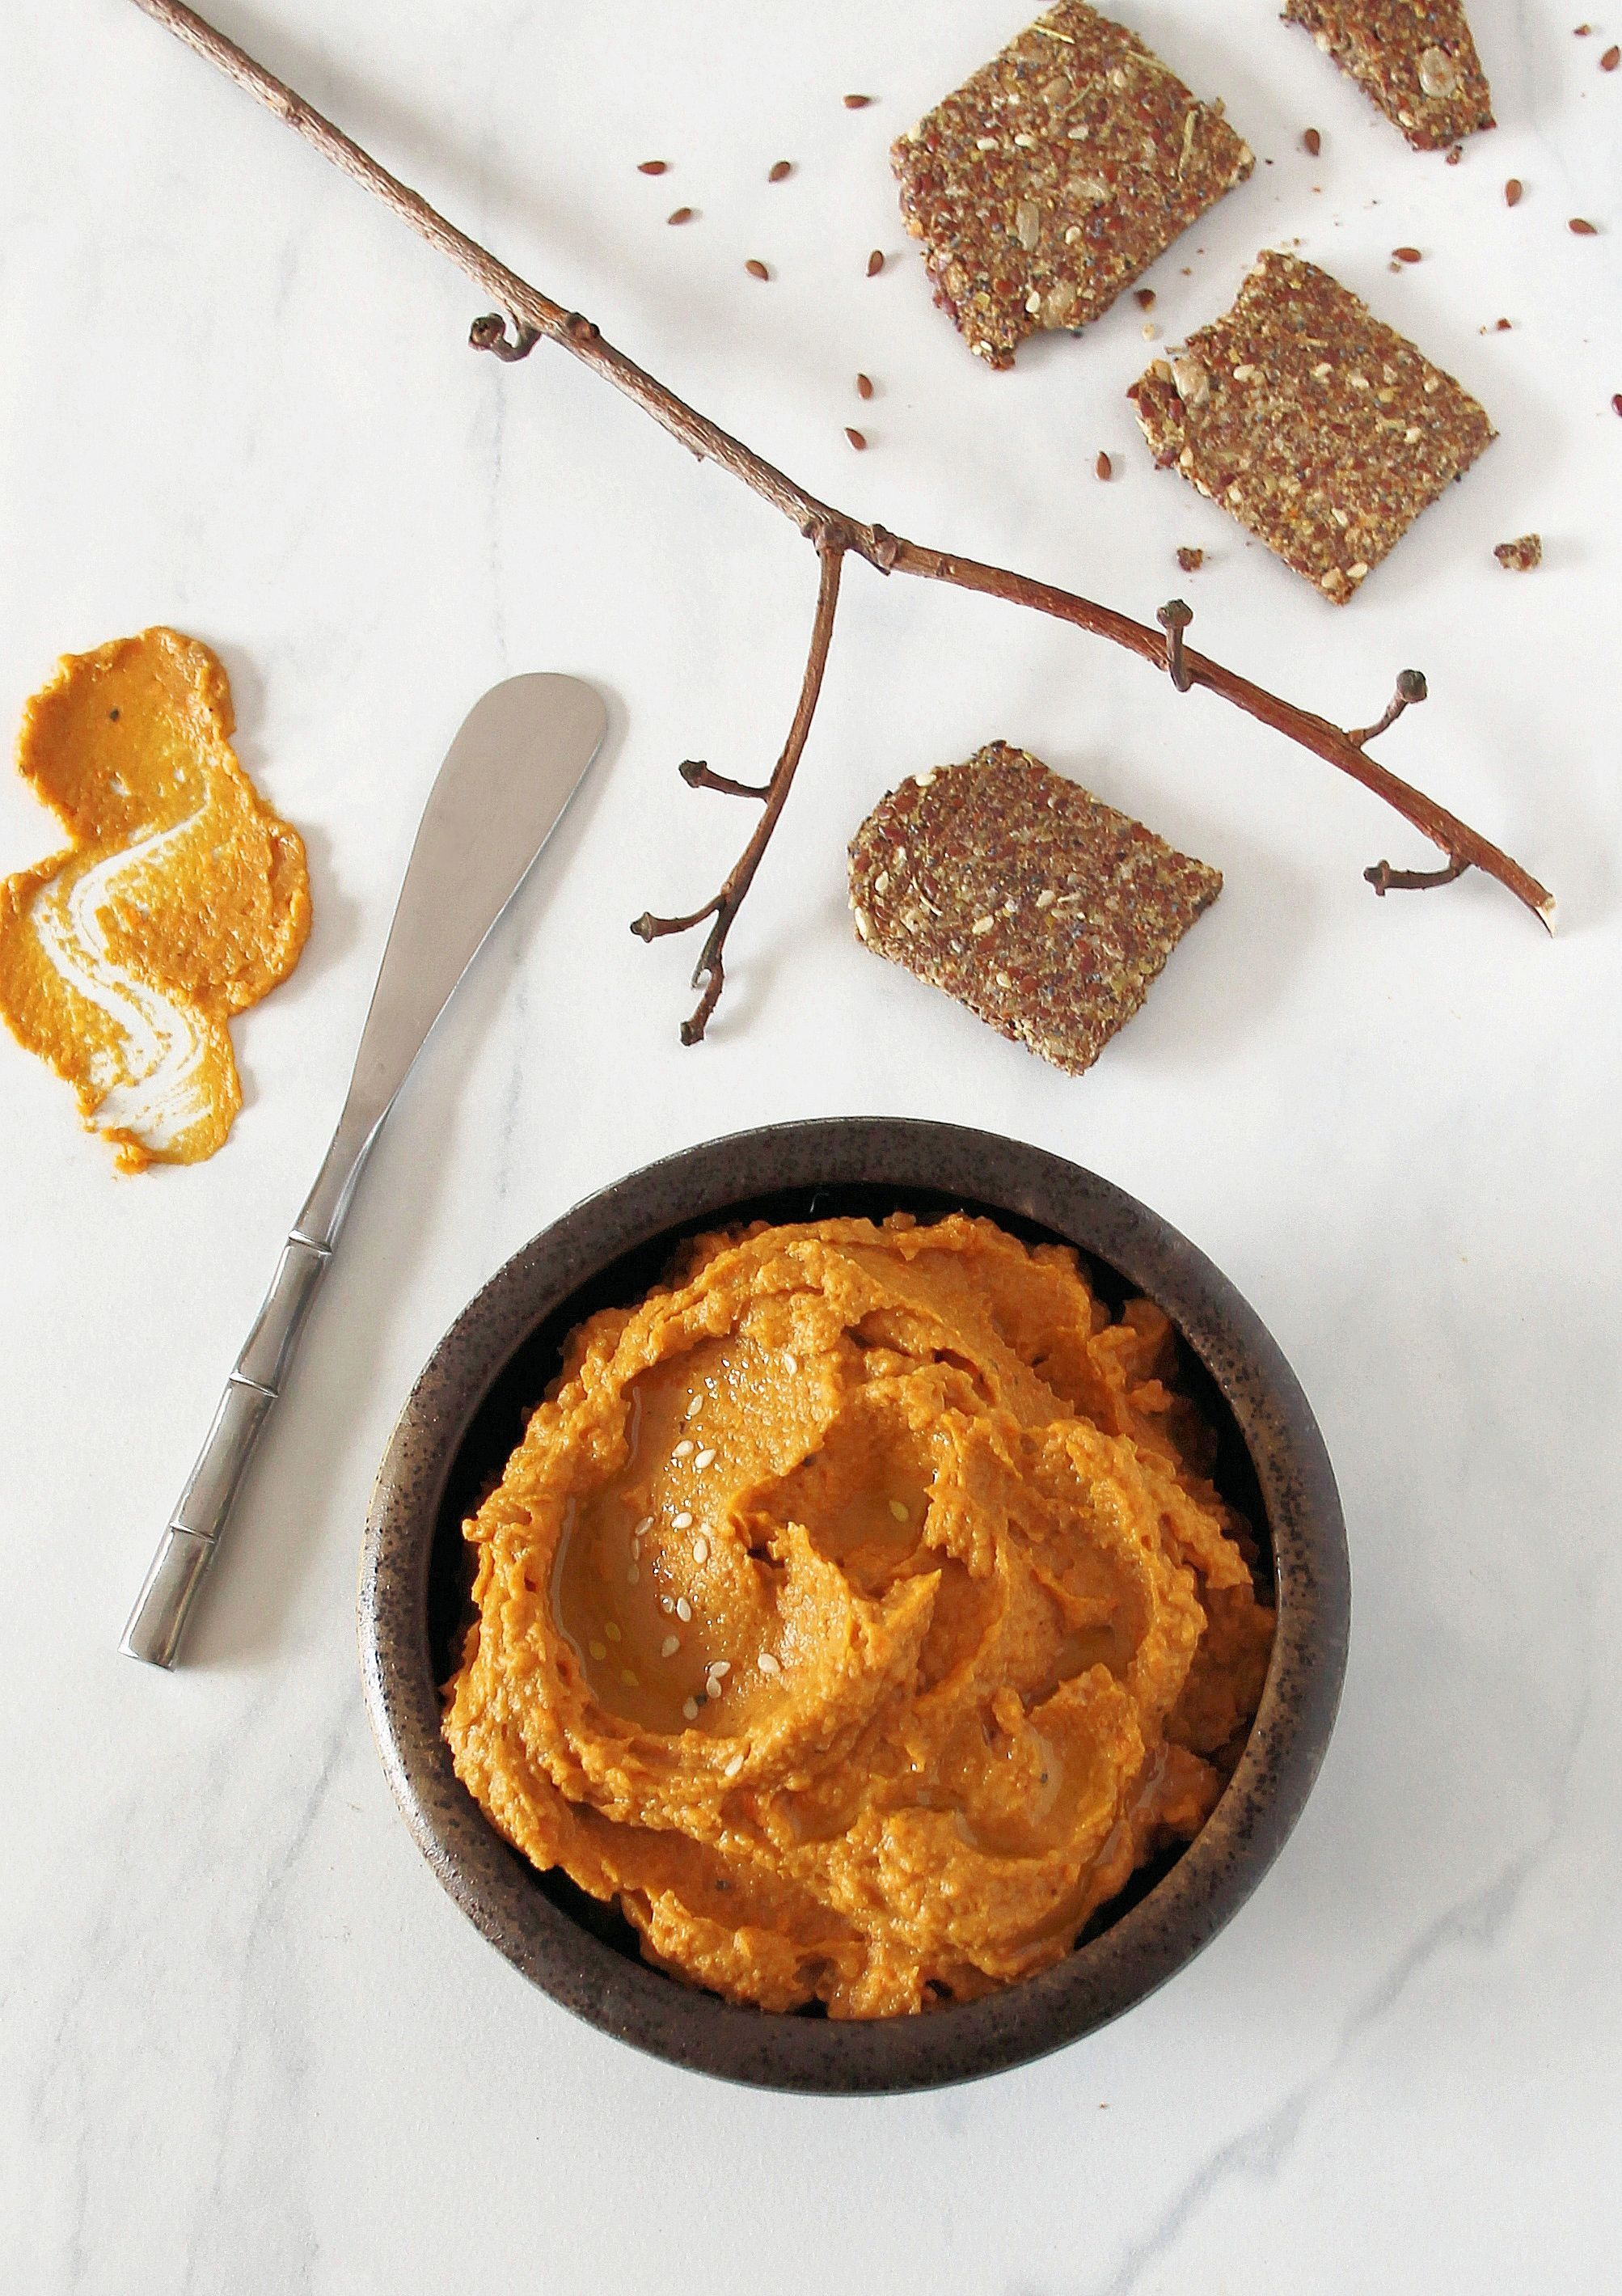 Roasted Sweet Potato & Persimmon Hummus with Almond-Flaxseed Crackers